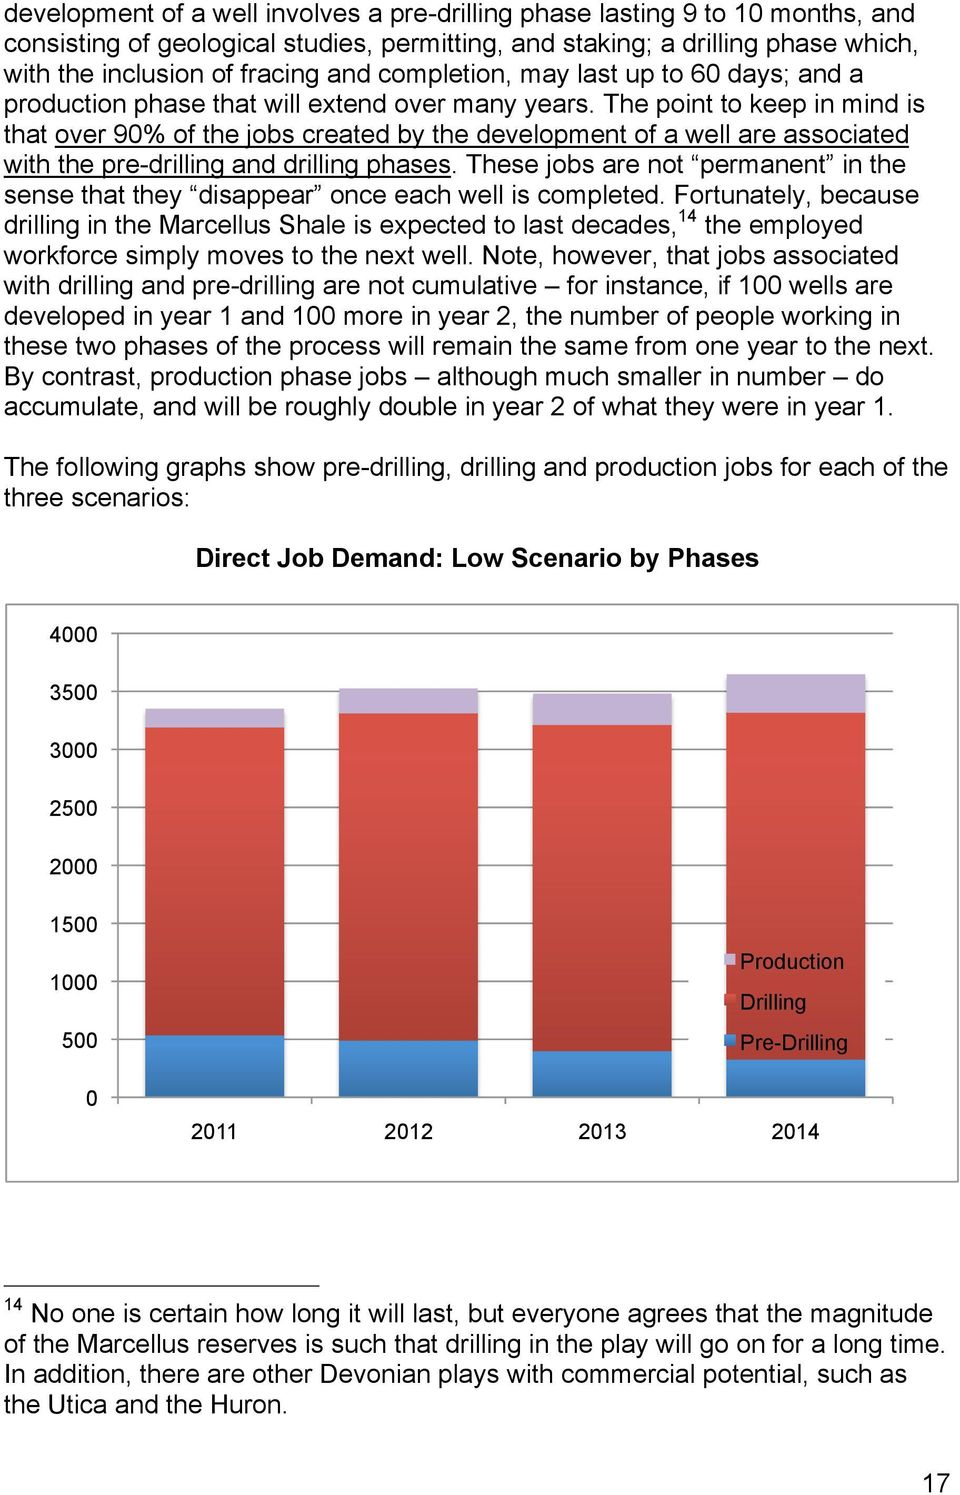 The point to keep in mind is that over 90% of the jobs created by the development of a well are associated with the pre-drilling and drilling phases.